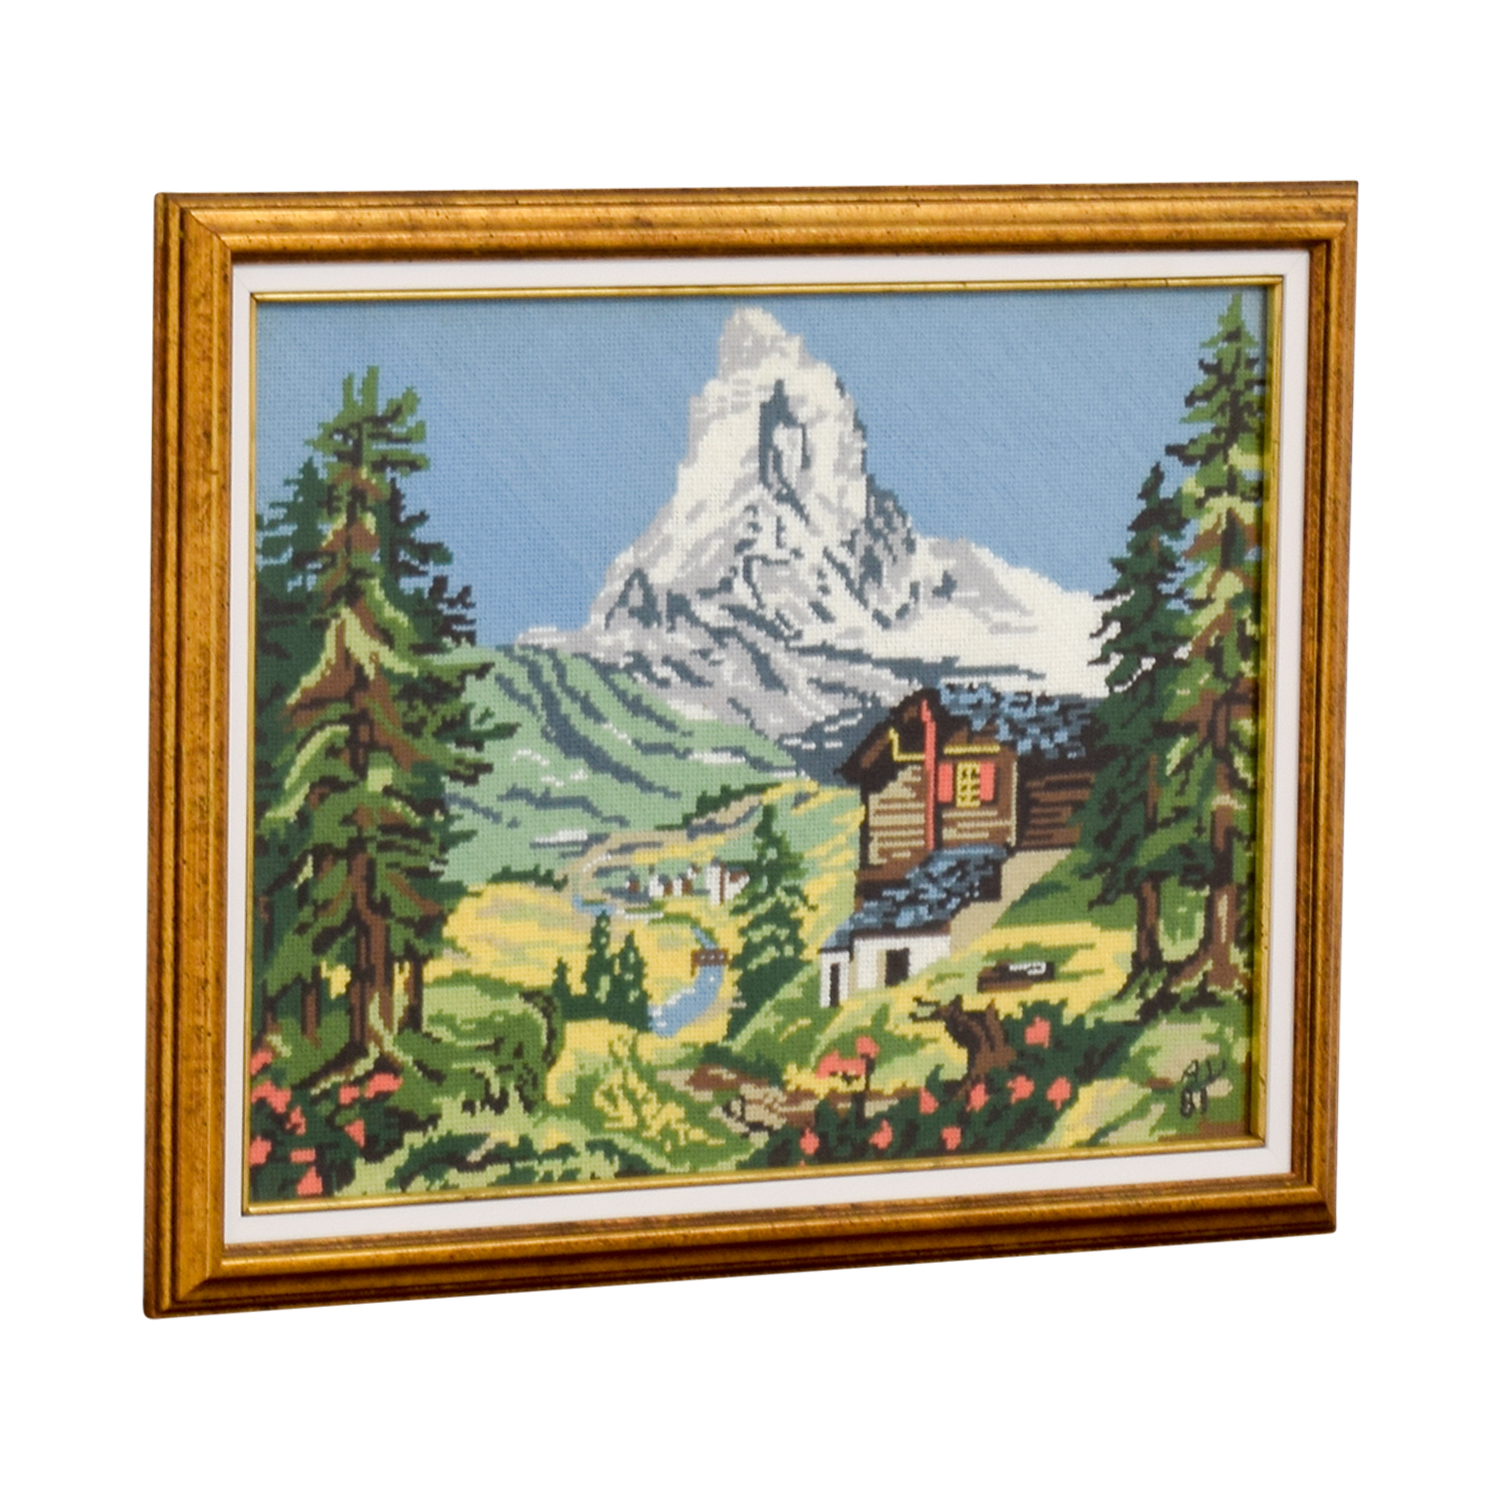 Framed Switzerland Scenic Mountain Needlepoint second hand